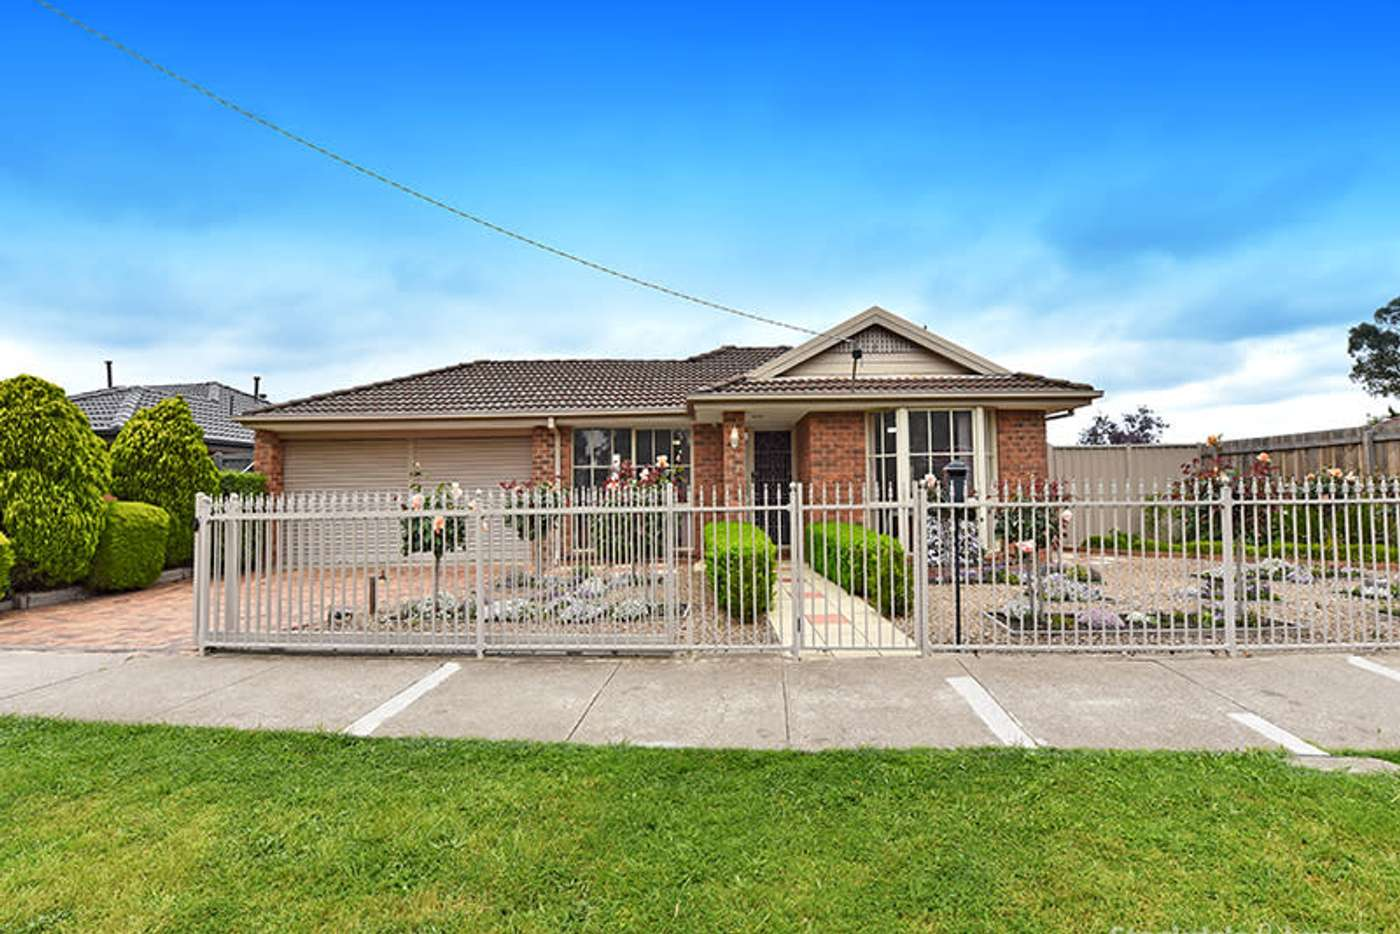 Main view of Homely house listing, 57 Dorchester Street, Craigieburn VIC 3064